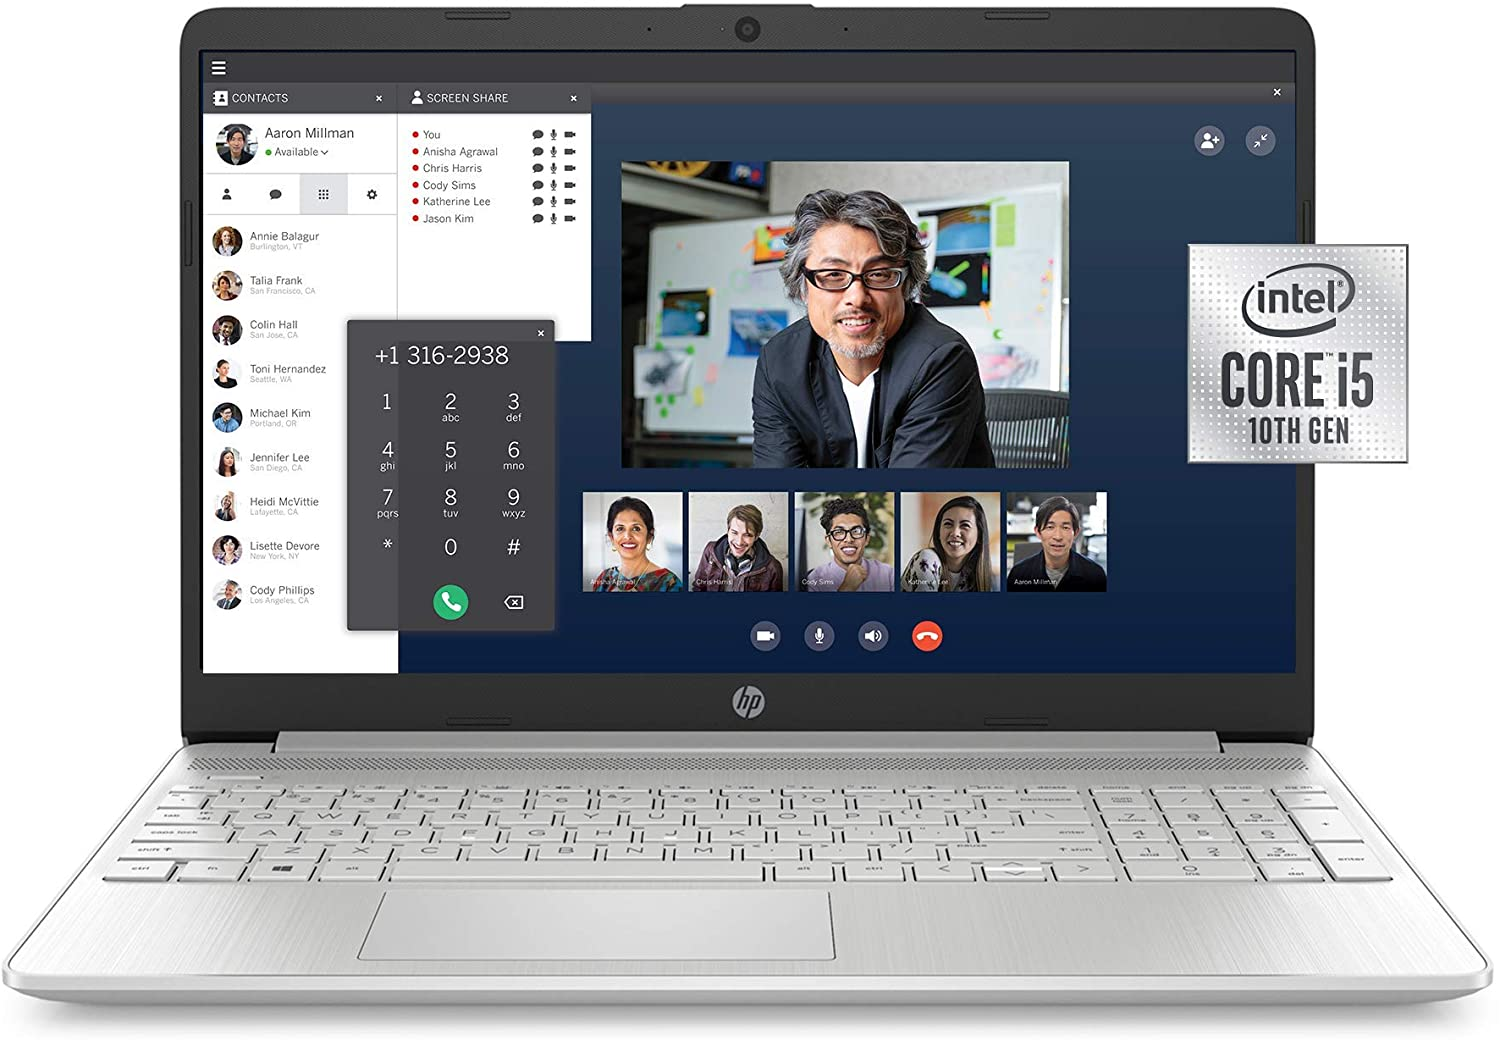 HP 15-Inch FHD Laptop, 10th Gen Intel Core i5-1035G1, 8 GB RAM, 256 GB Solid-State Drive, Windows 10 Home (15-dy1036nr, Natural Silver) (Renewed)